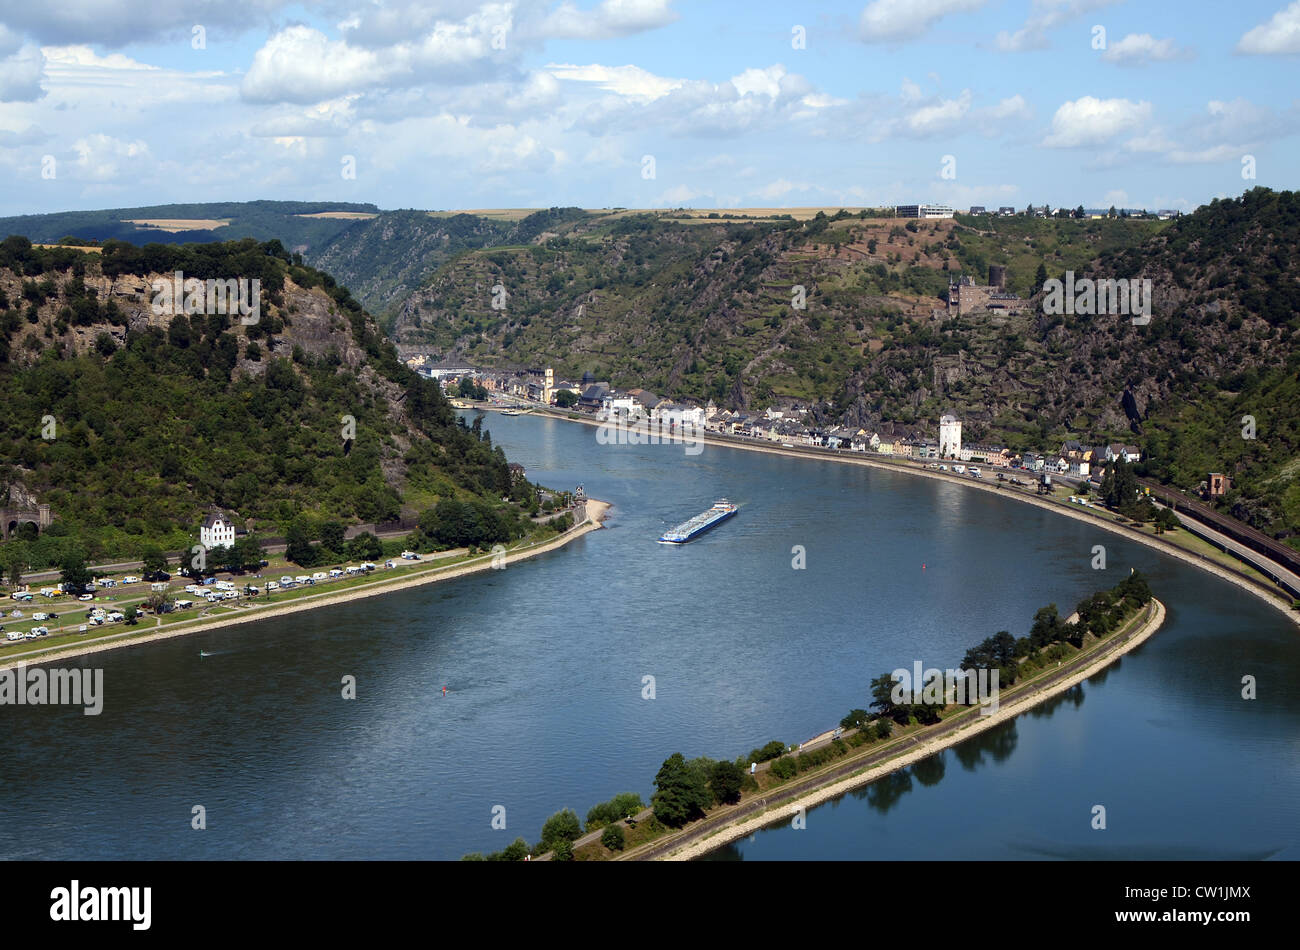 View from the Loreley rock at the river Rhine in Germany Stock Photo